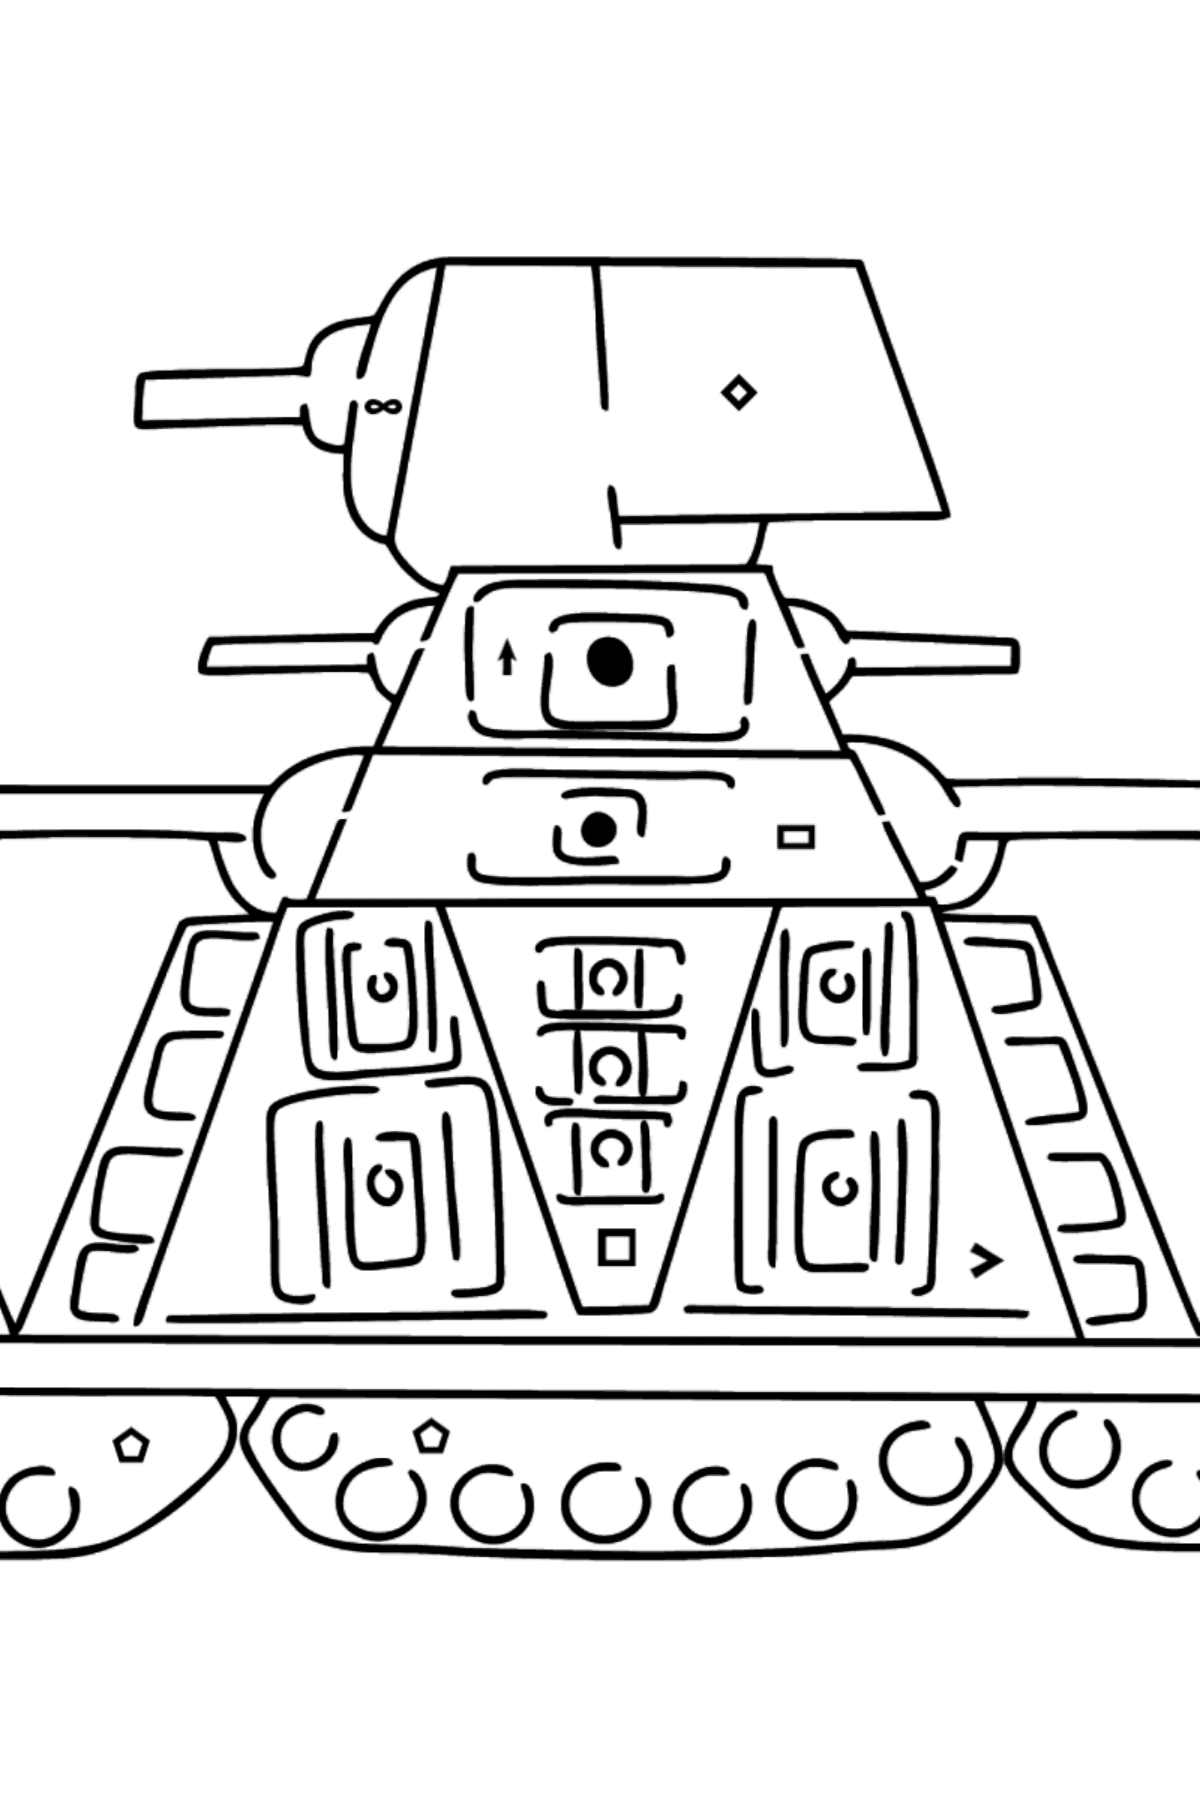 Tank KV 44 coloring page - Coloring by Symbols and Geometric Shapes for Kids